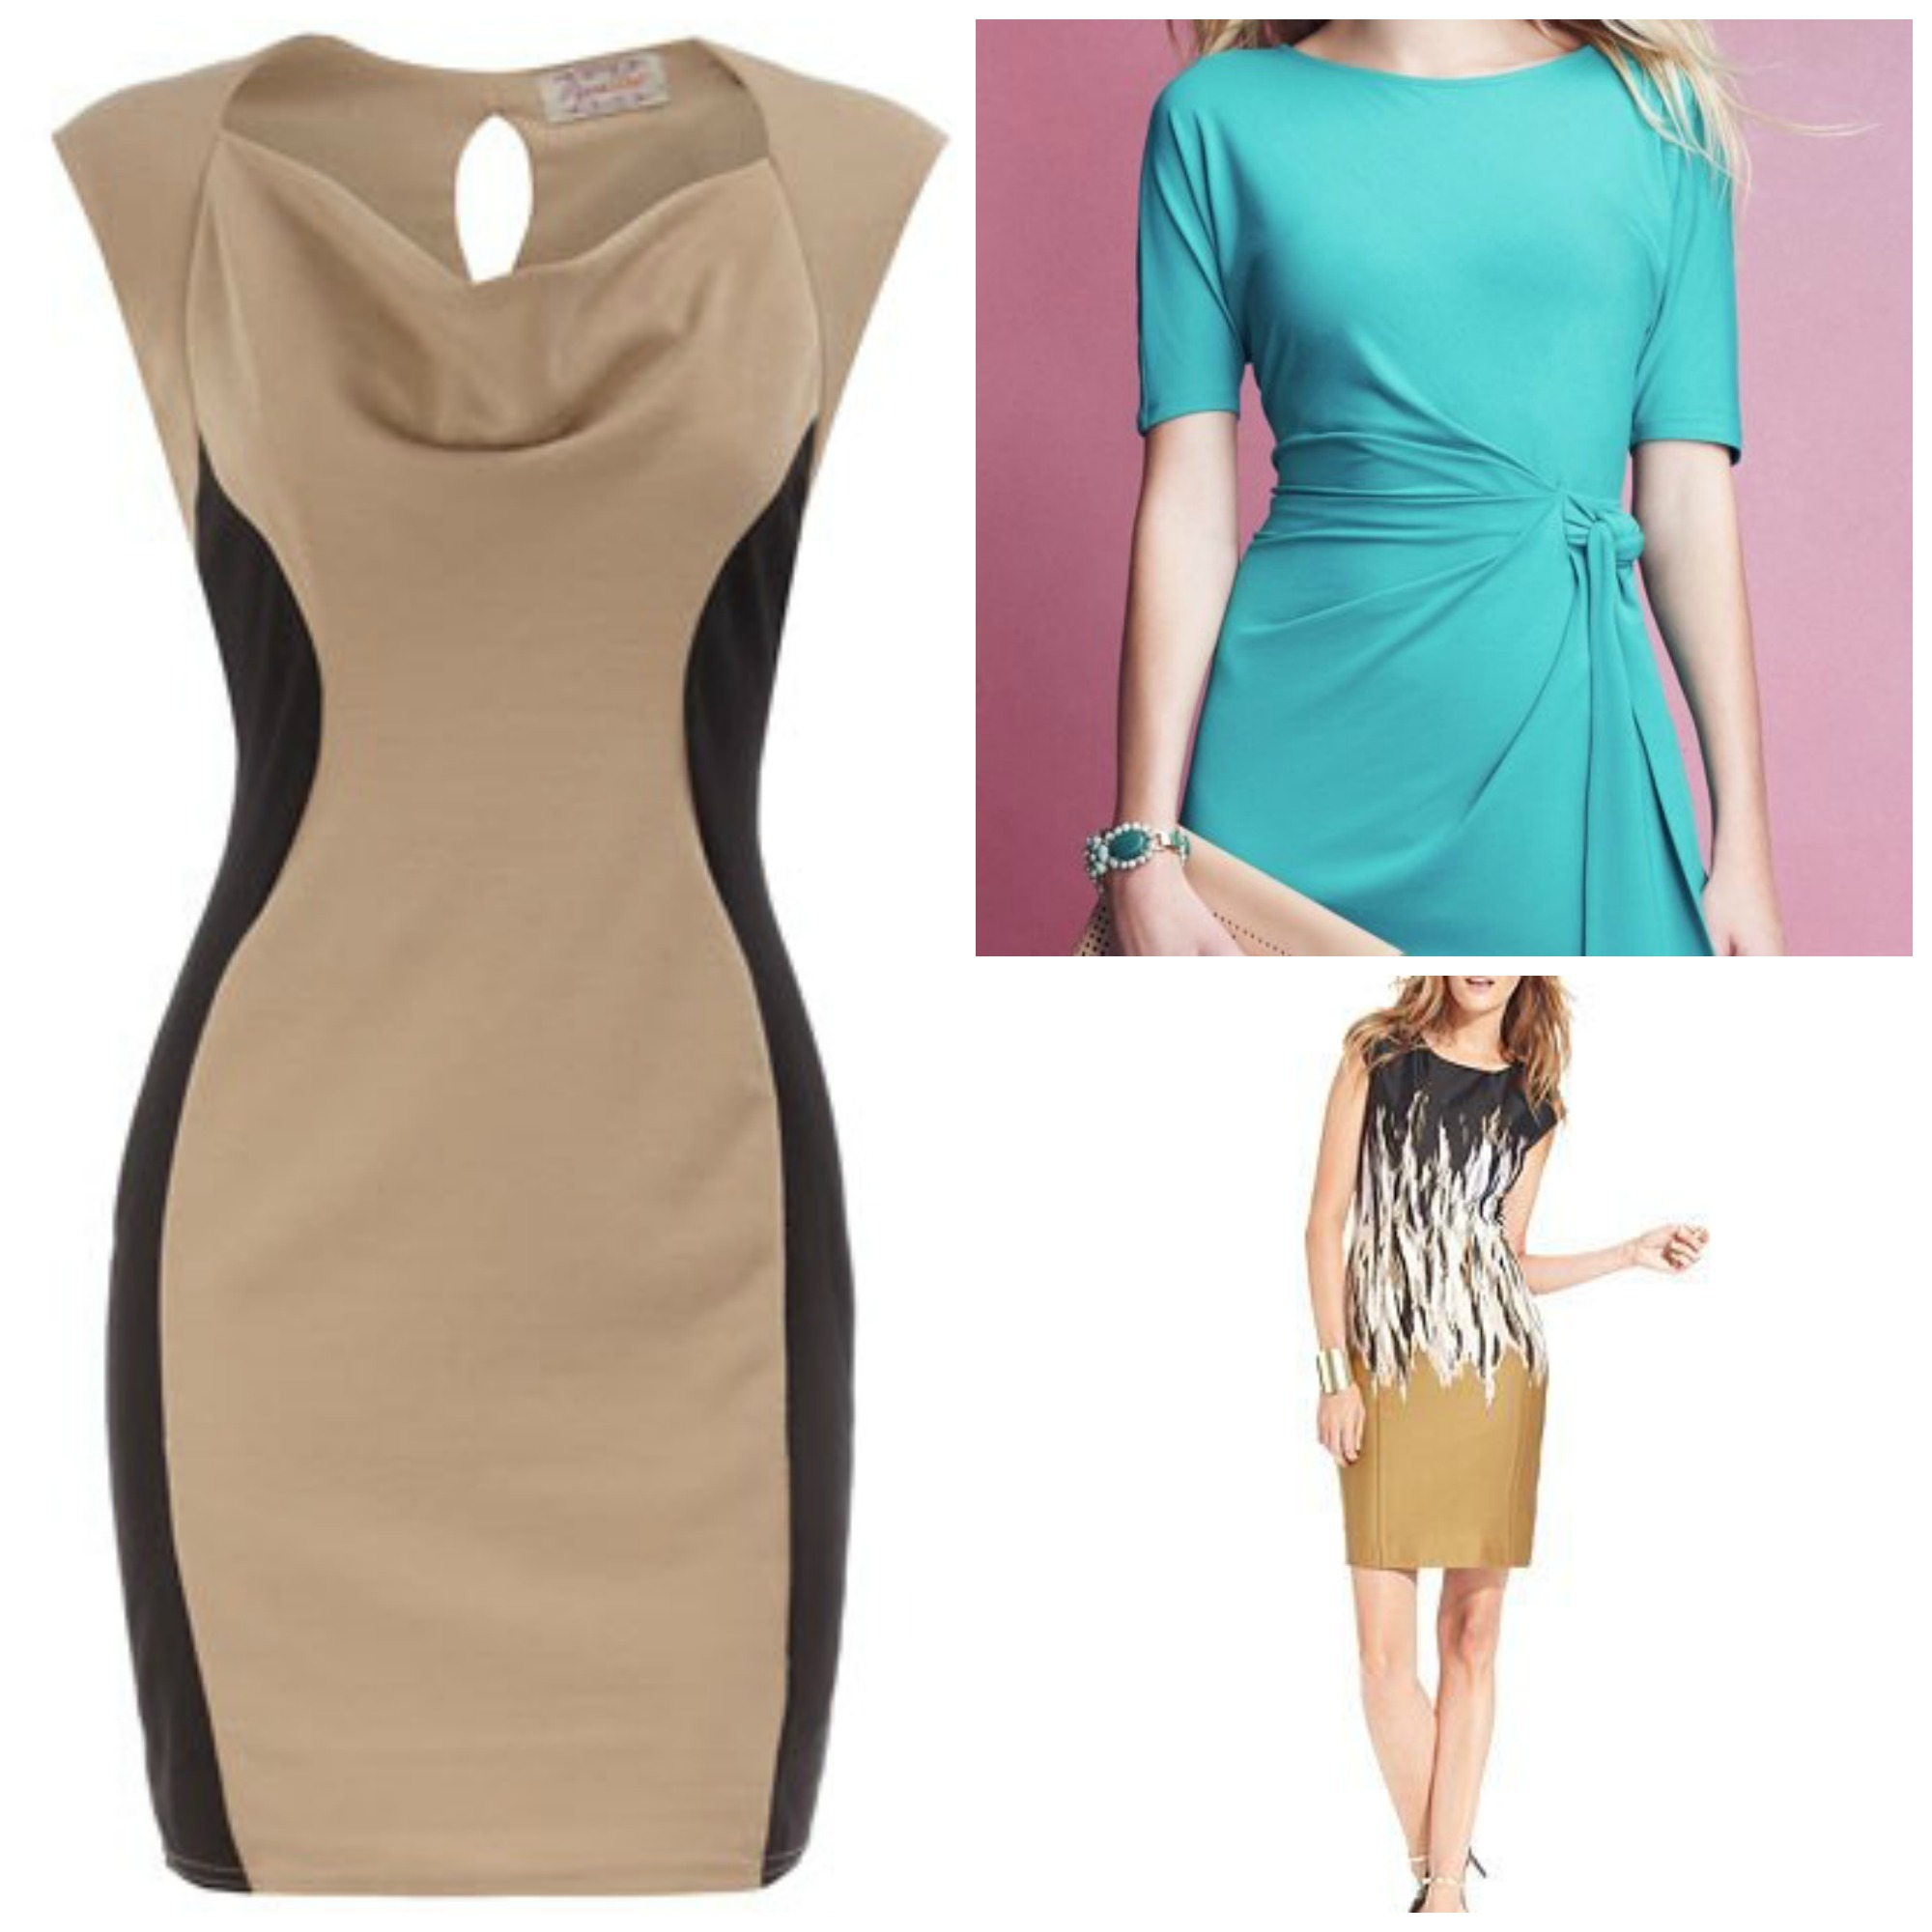 1b34b793144 10 Ways to Dress to Look 10 Pounds Thinner - Invent Your Image